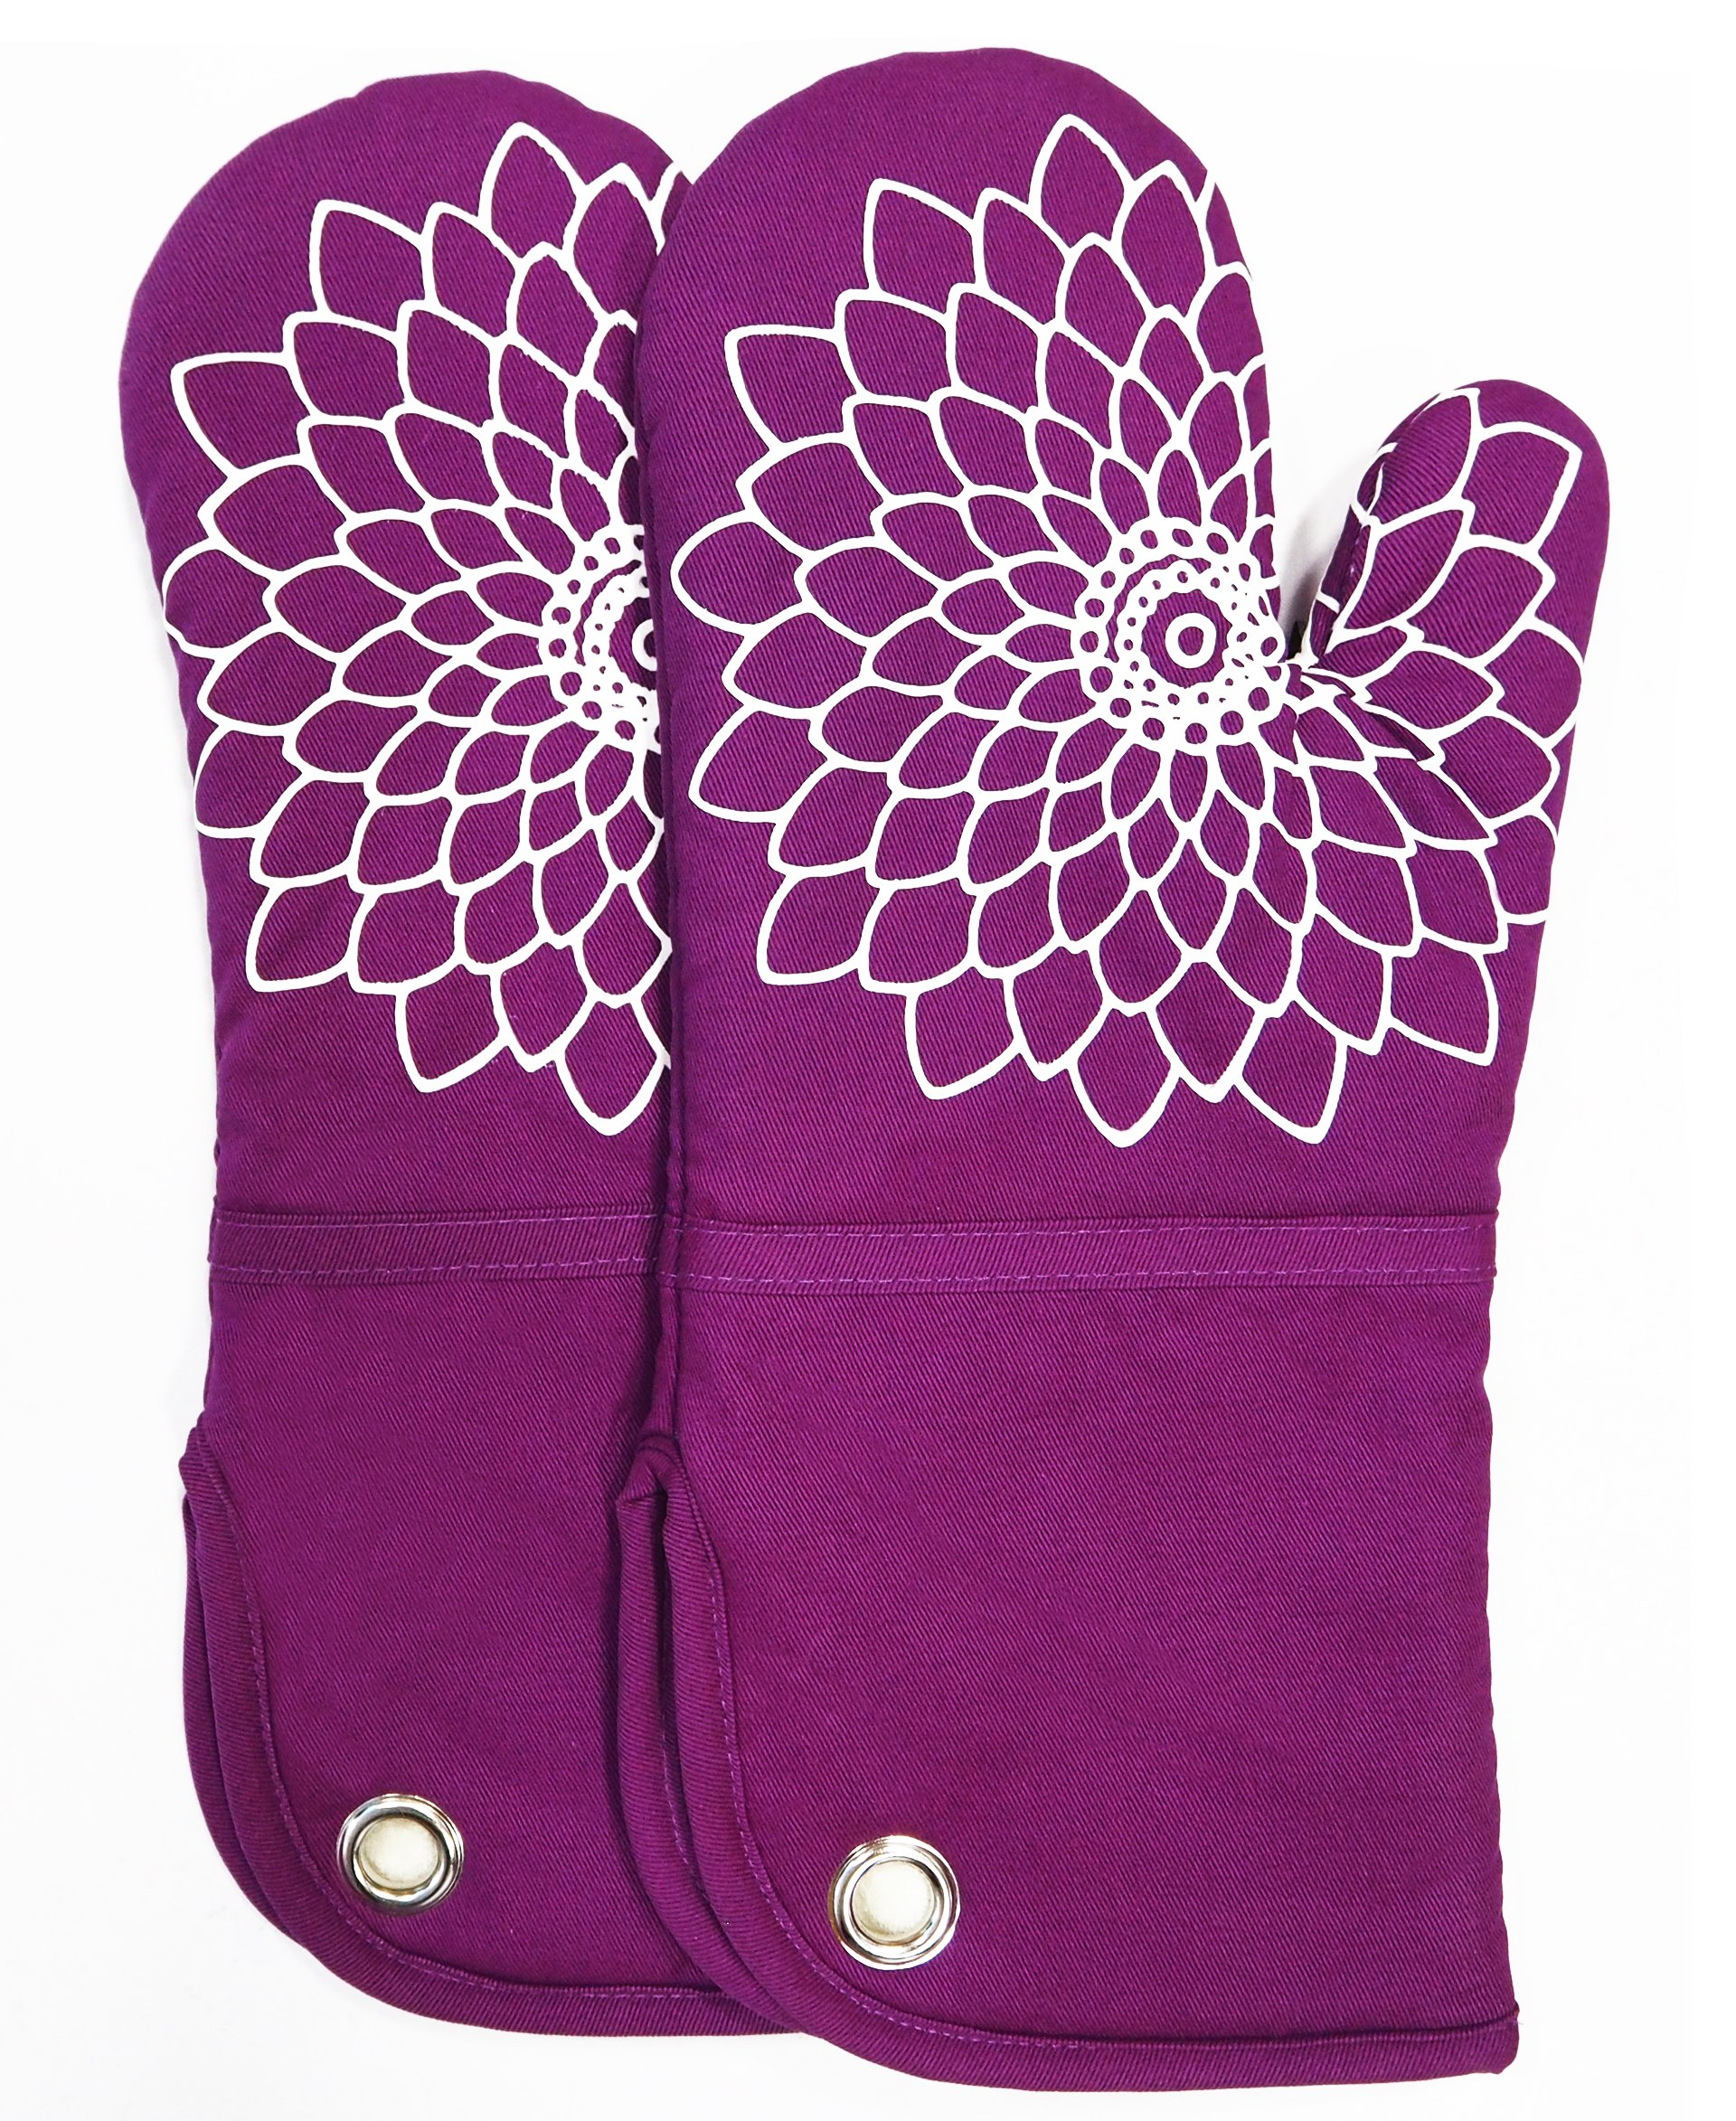 Silicone Printing Oven Mitts/Gloves 1 Pair, Heat Resistant to 500 Degree, Non-Slip for Home Kitchen Cooking Barbecue Microwave for Women/Men Machine Washable BBQ (Purple)